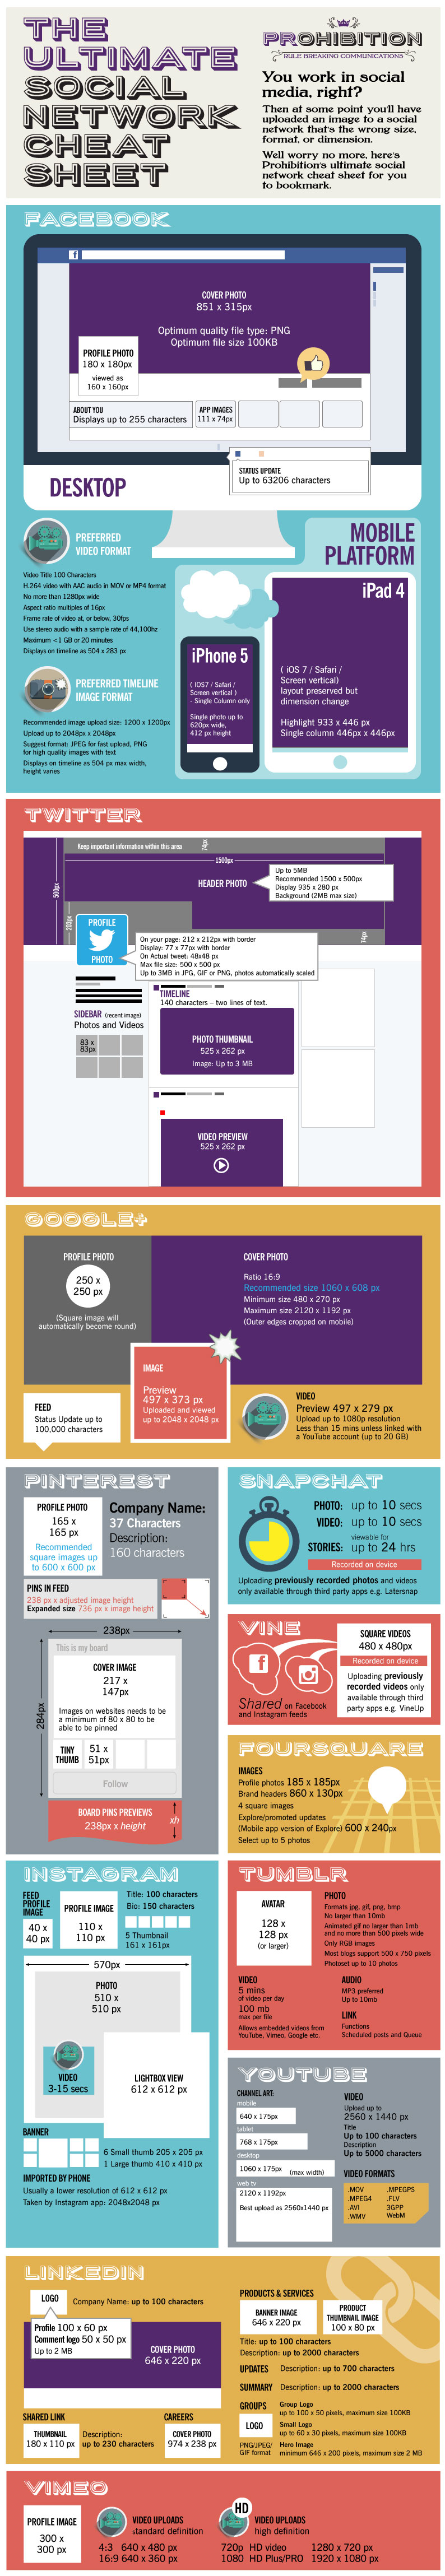 The Ultimate Social Media Cheat Sheet by Prohibition